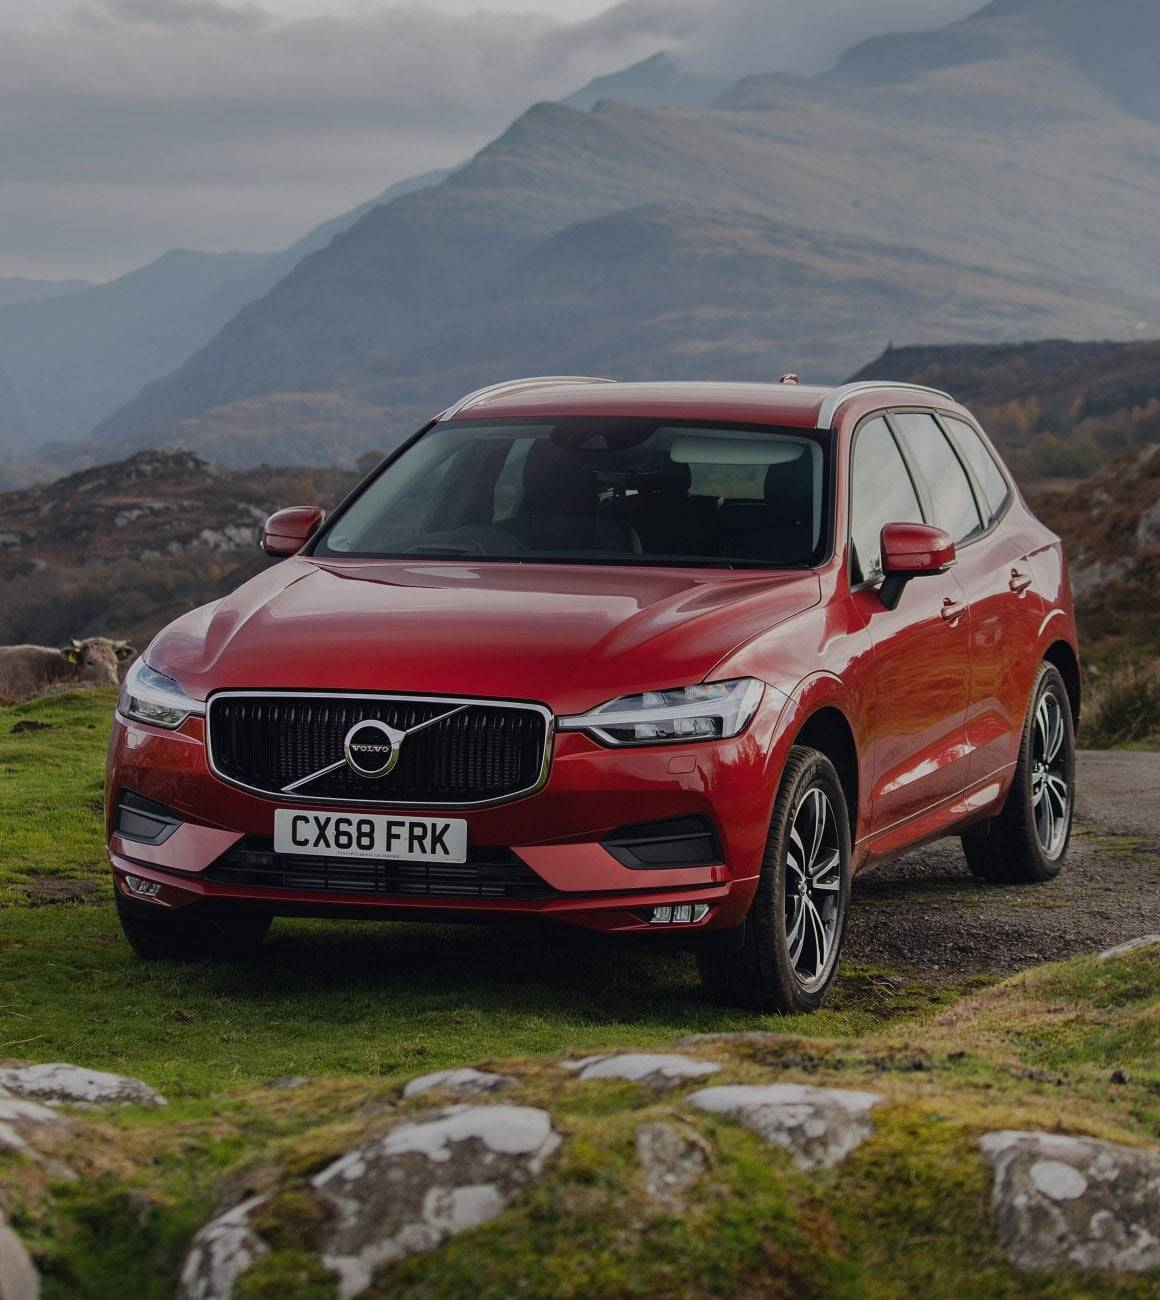 Compare Volvo insurance costs for all models